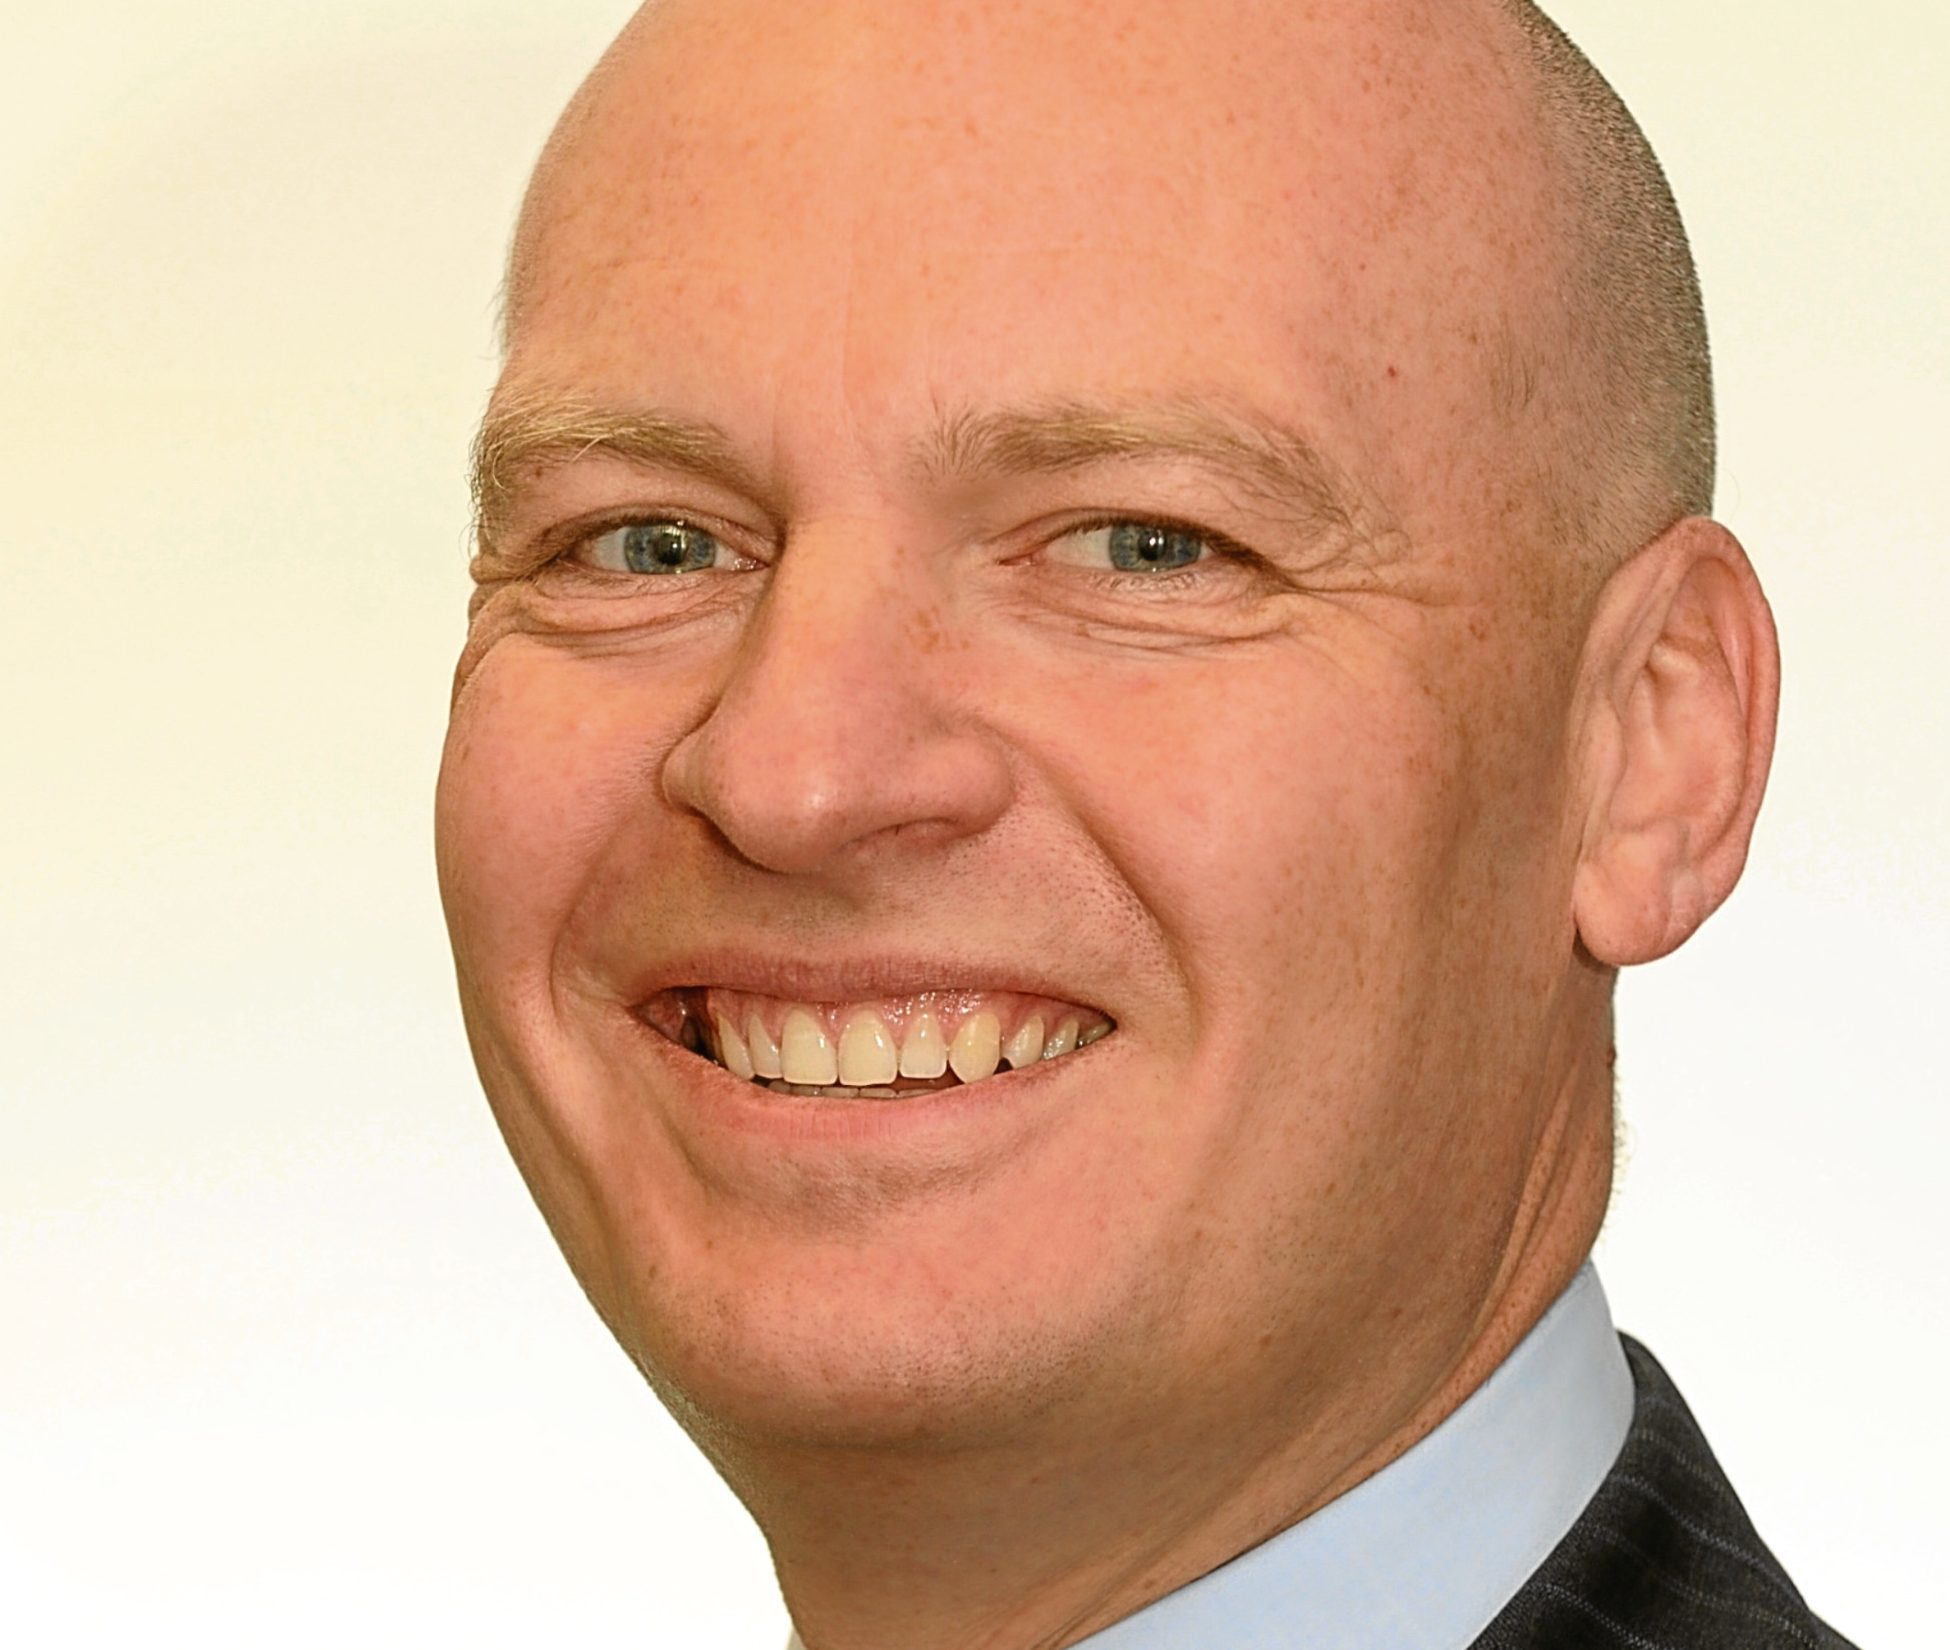 Patrick Connolly is head of communications with independent financial adviser AWD Chase de Vere.